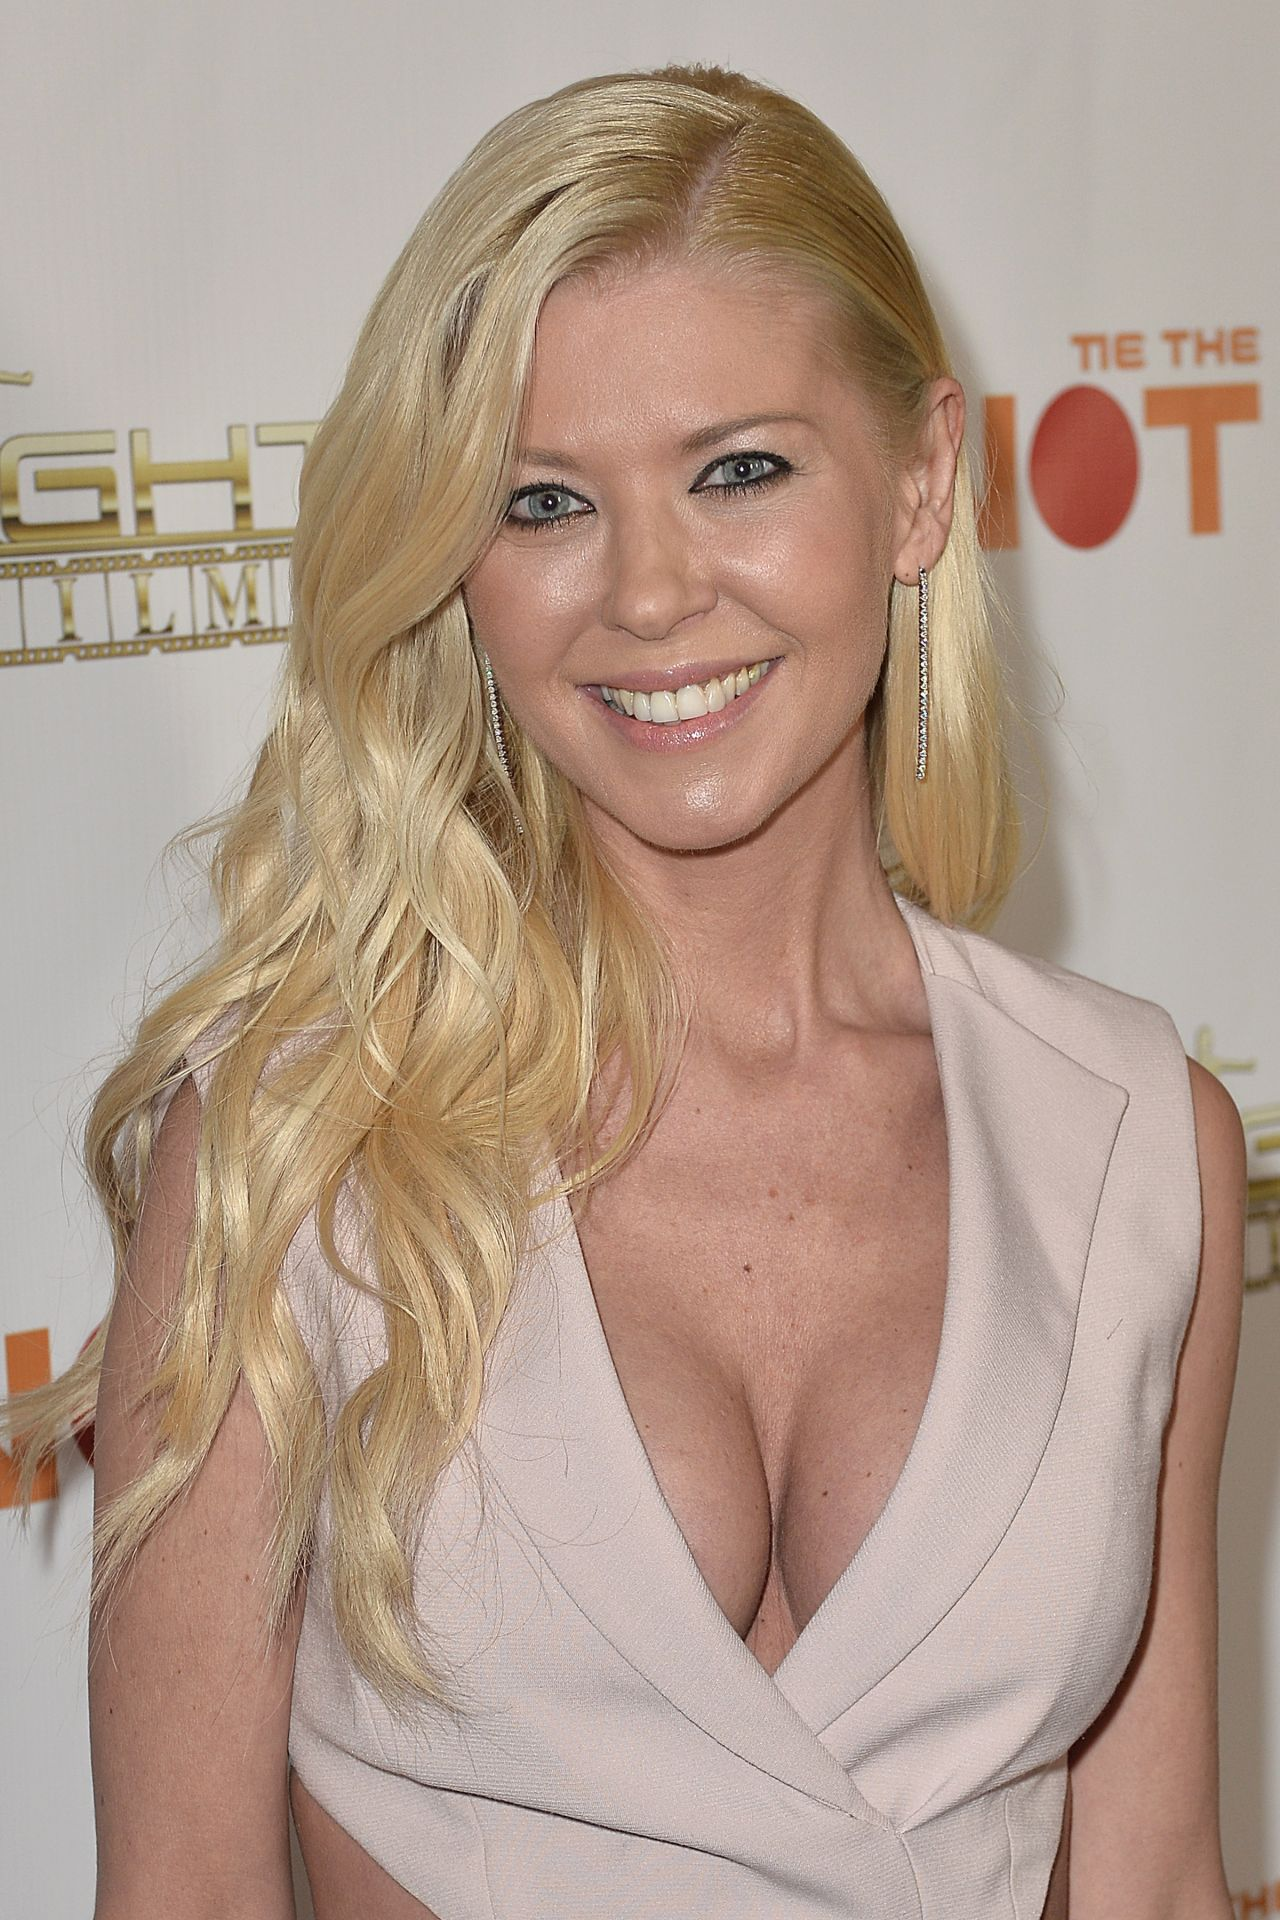 how tall is tara reid